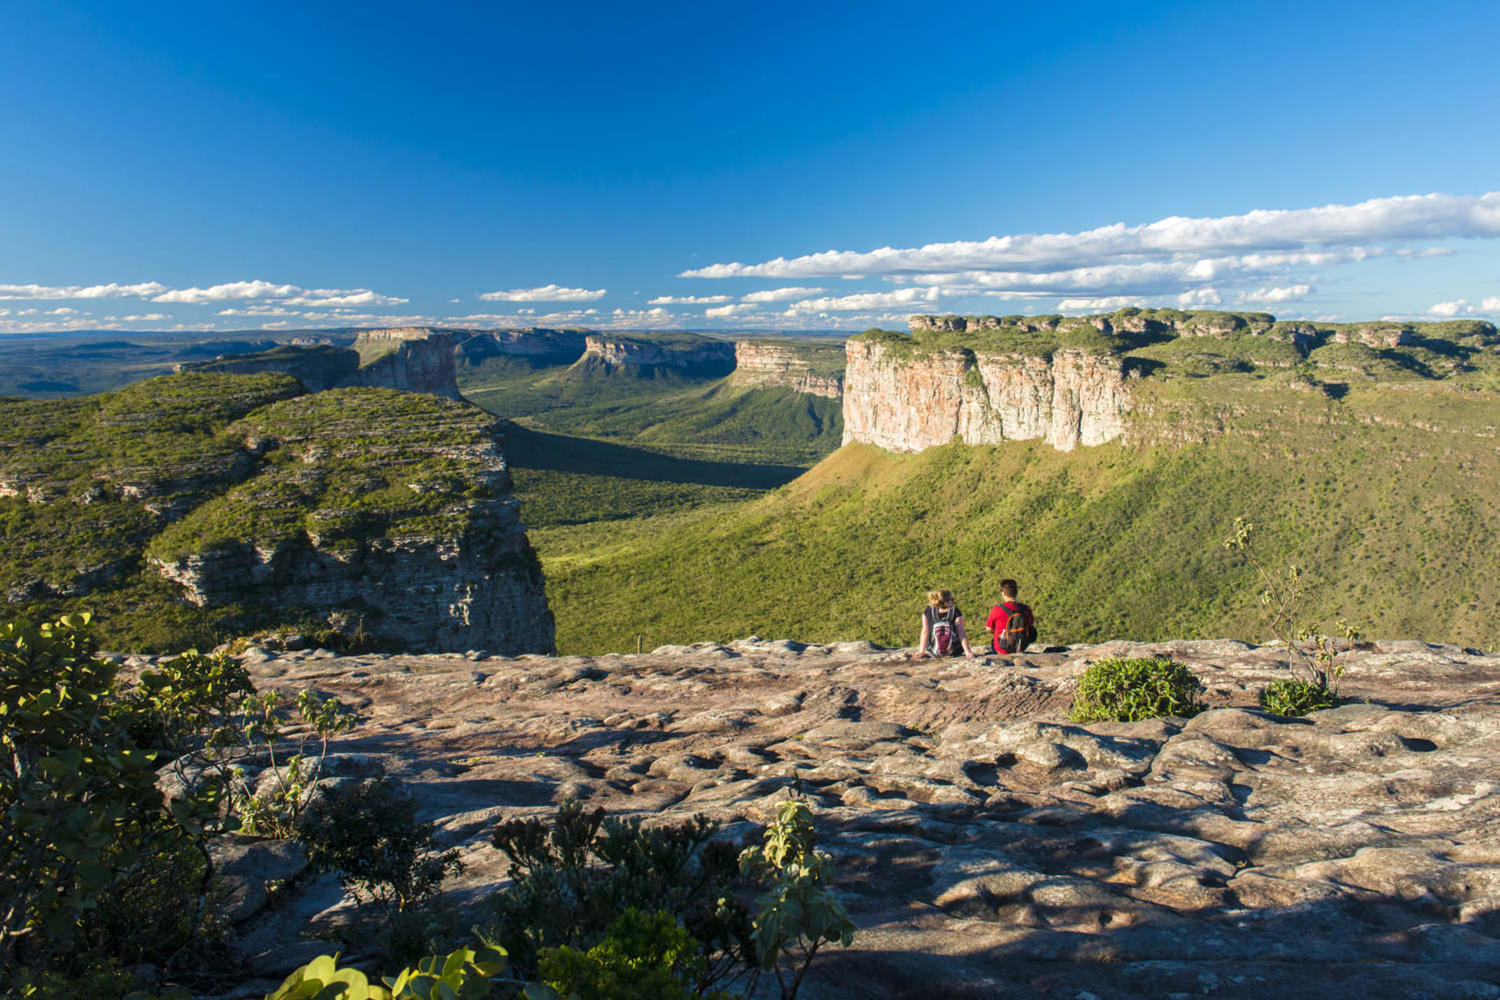 Travellers enjoying the view at Chapada Diamantina National Park